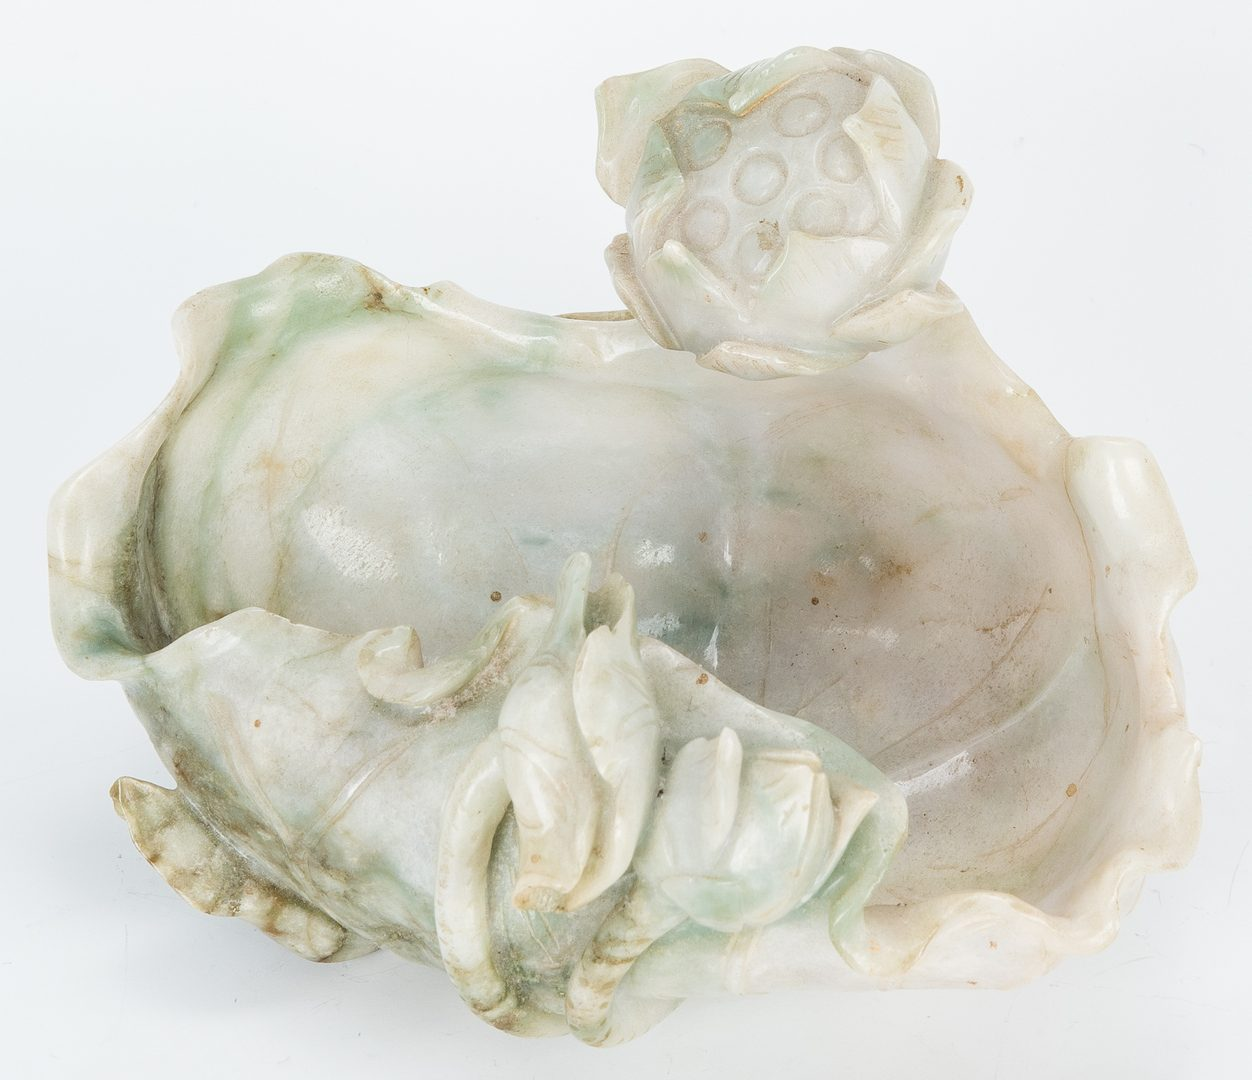 Lot 3: Carved Jade Lotus Blossom Bowl w/ Stand